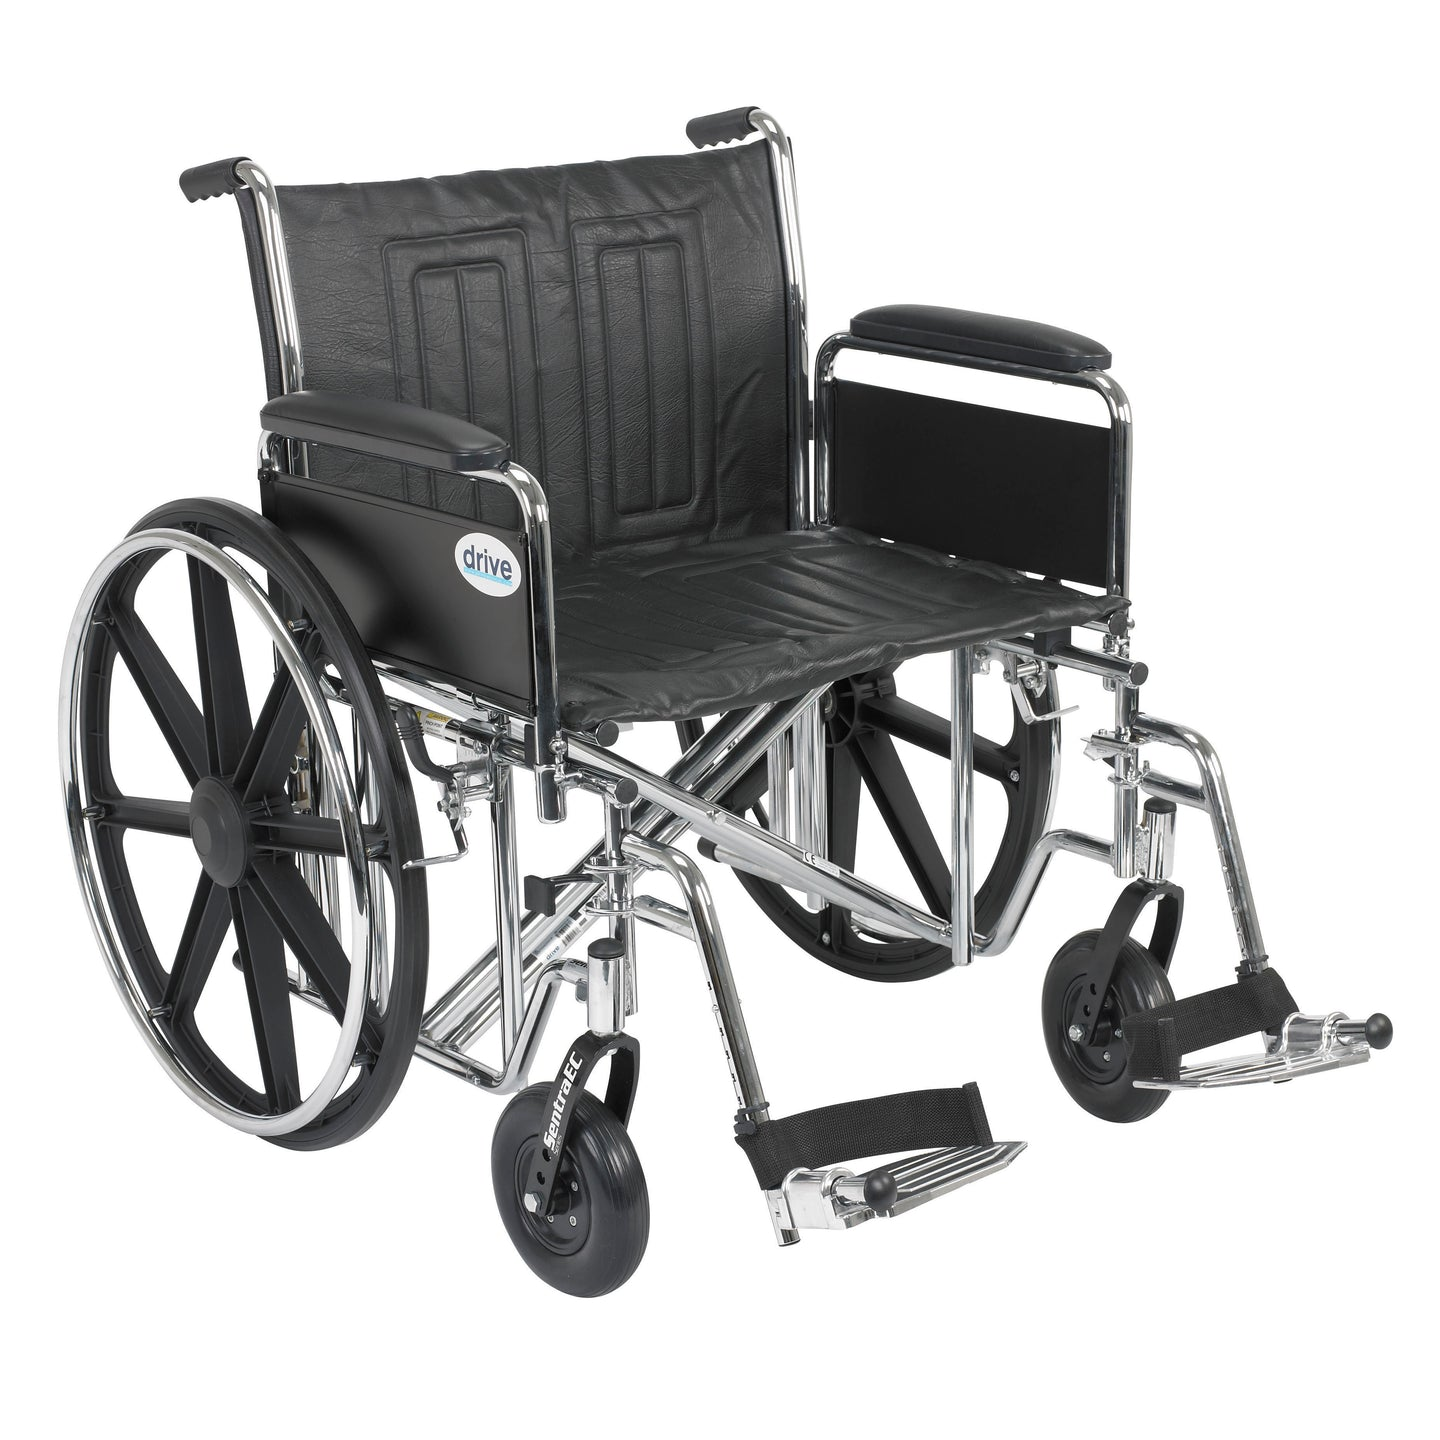 Drive Sentra EC Heavy Duty Wheelchair- Detachable Full Arms- Swing away Footrests- 24